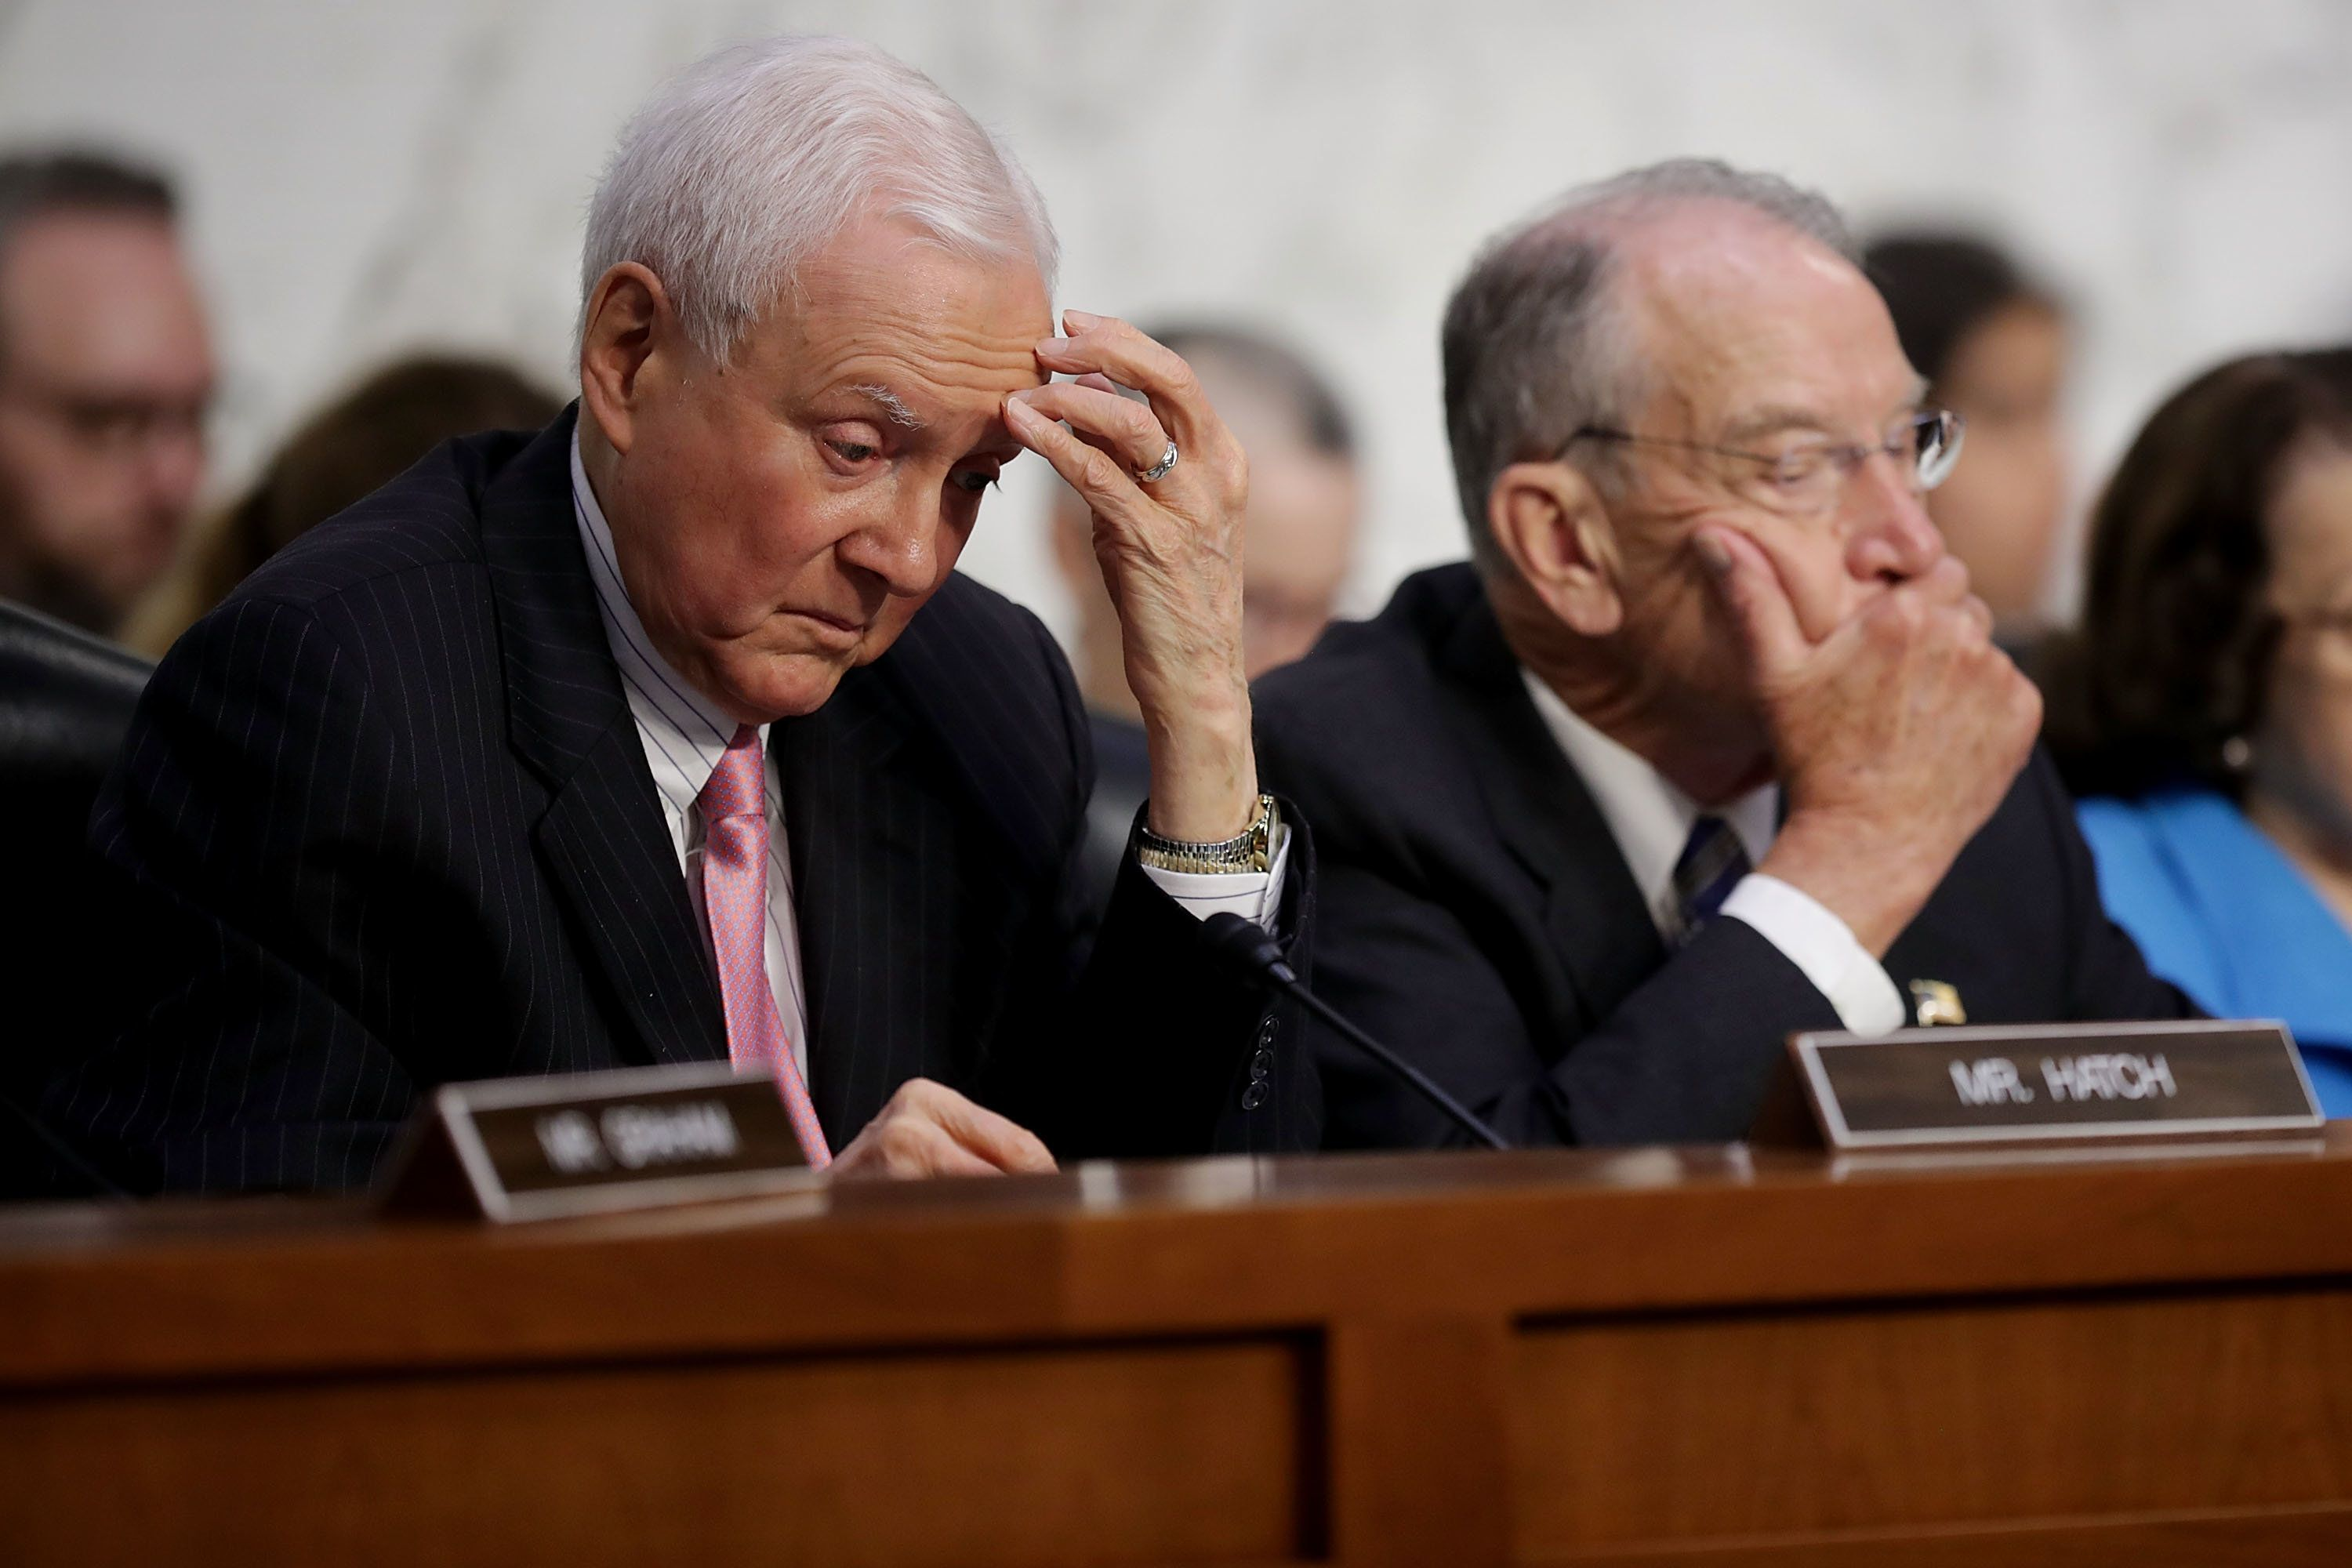 WASHINGTON, DC - SEPTEMBER 05:  Senate Judiciary Committee member Orrin Hatch (R-UT) (L) and Chairman Charles Grassley (R-IA) listen to testimony by Supreme Court nominee Judge Brett Kavanaugh during the second day of his confirmation hearing on Capitol Hill September 5, 2018 in Washington, DC. Kavanaugh was nominated by President Donald Trump to fill the vacancy on the court left by retiring Associate Justice Anthony Kennedy.  (Photo by Chip Somodevilla/Getty Images)